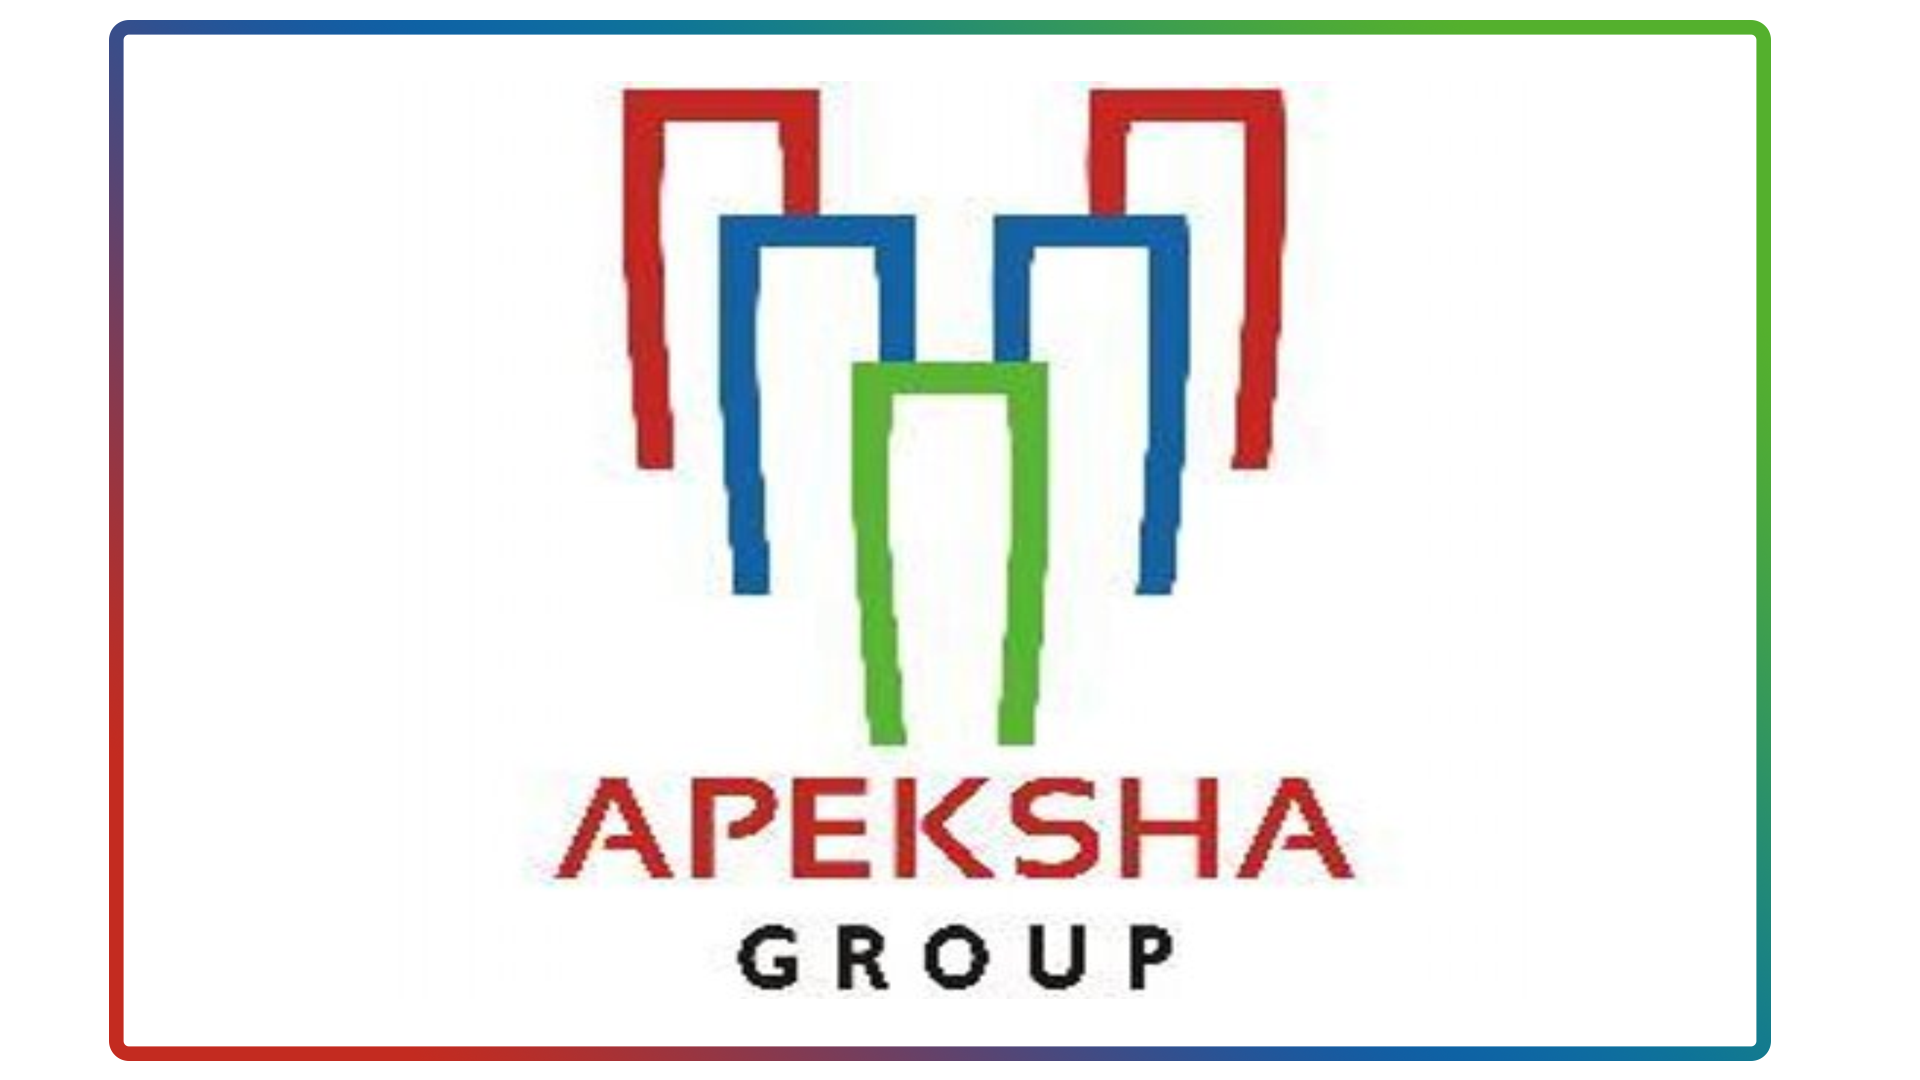 Apeksha Group